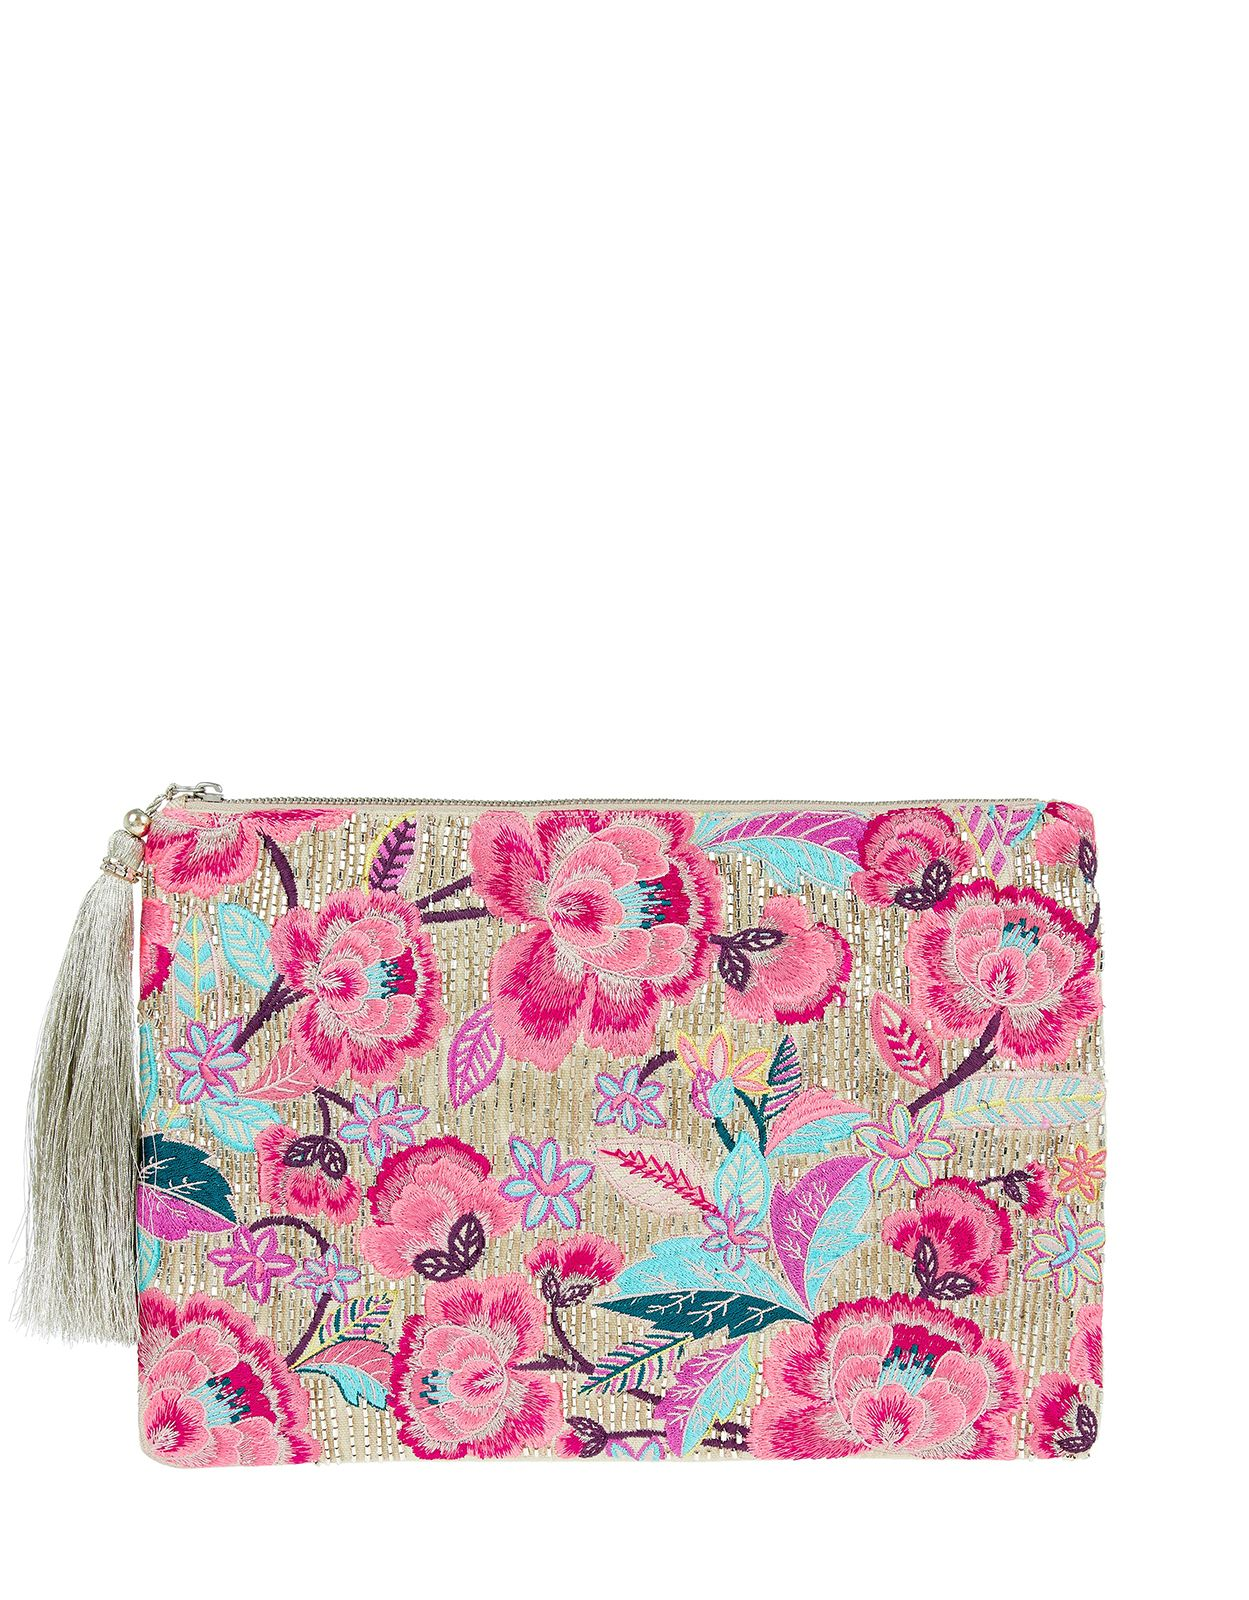 a6044d19f Accessorize | Sophie Oversized Floral Ziptop Clutch Bag | Multi | One Size  | 4909149900